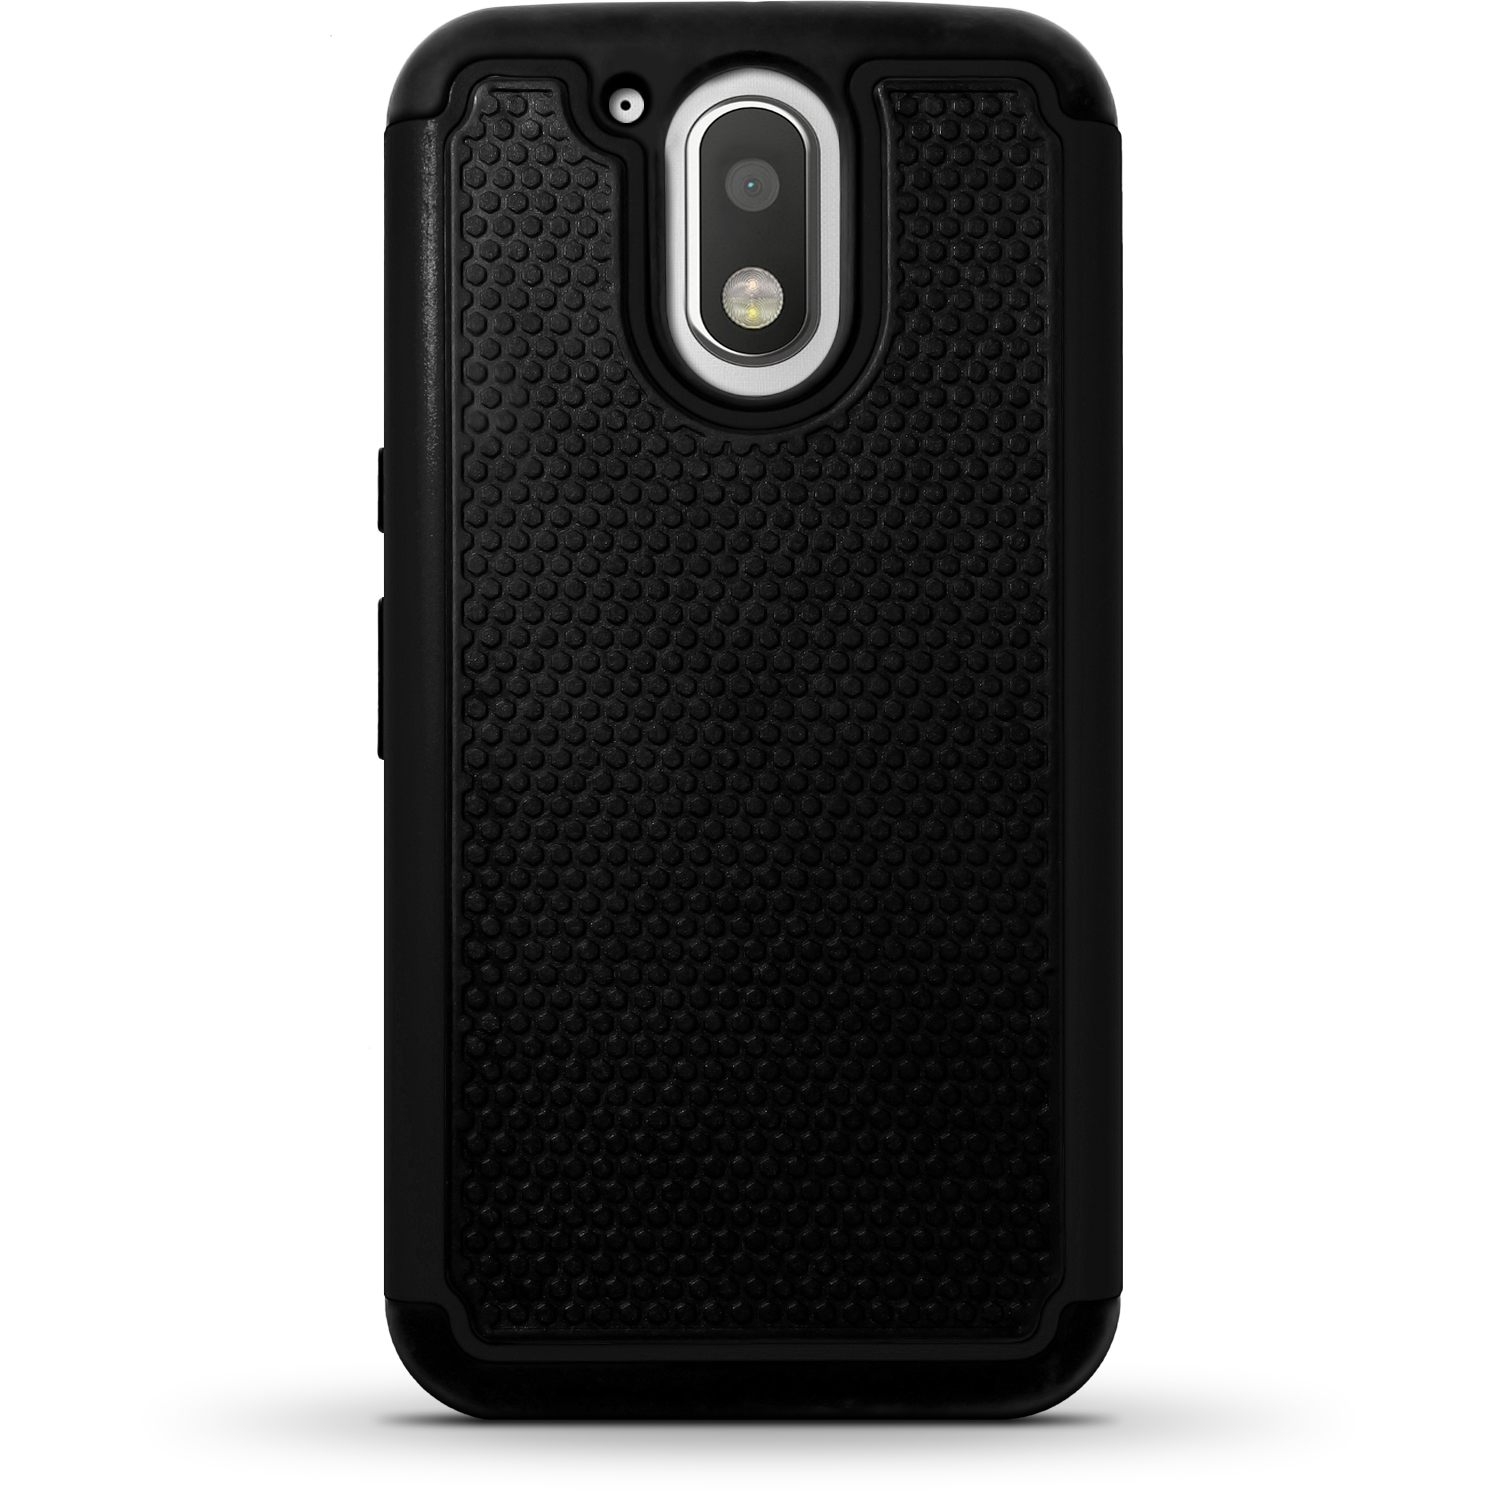 new style 693d9 720f0 Details about Hard Back Cover & Silicone Gel Case for Motorola Moto G4 Play  XT1601 Screen Prot